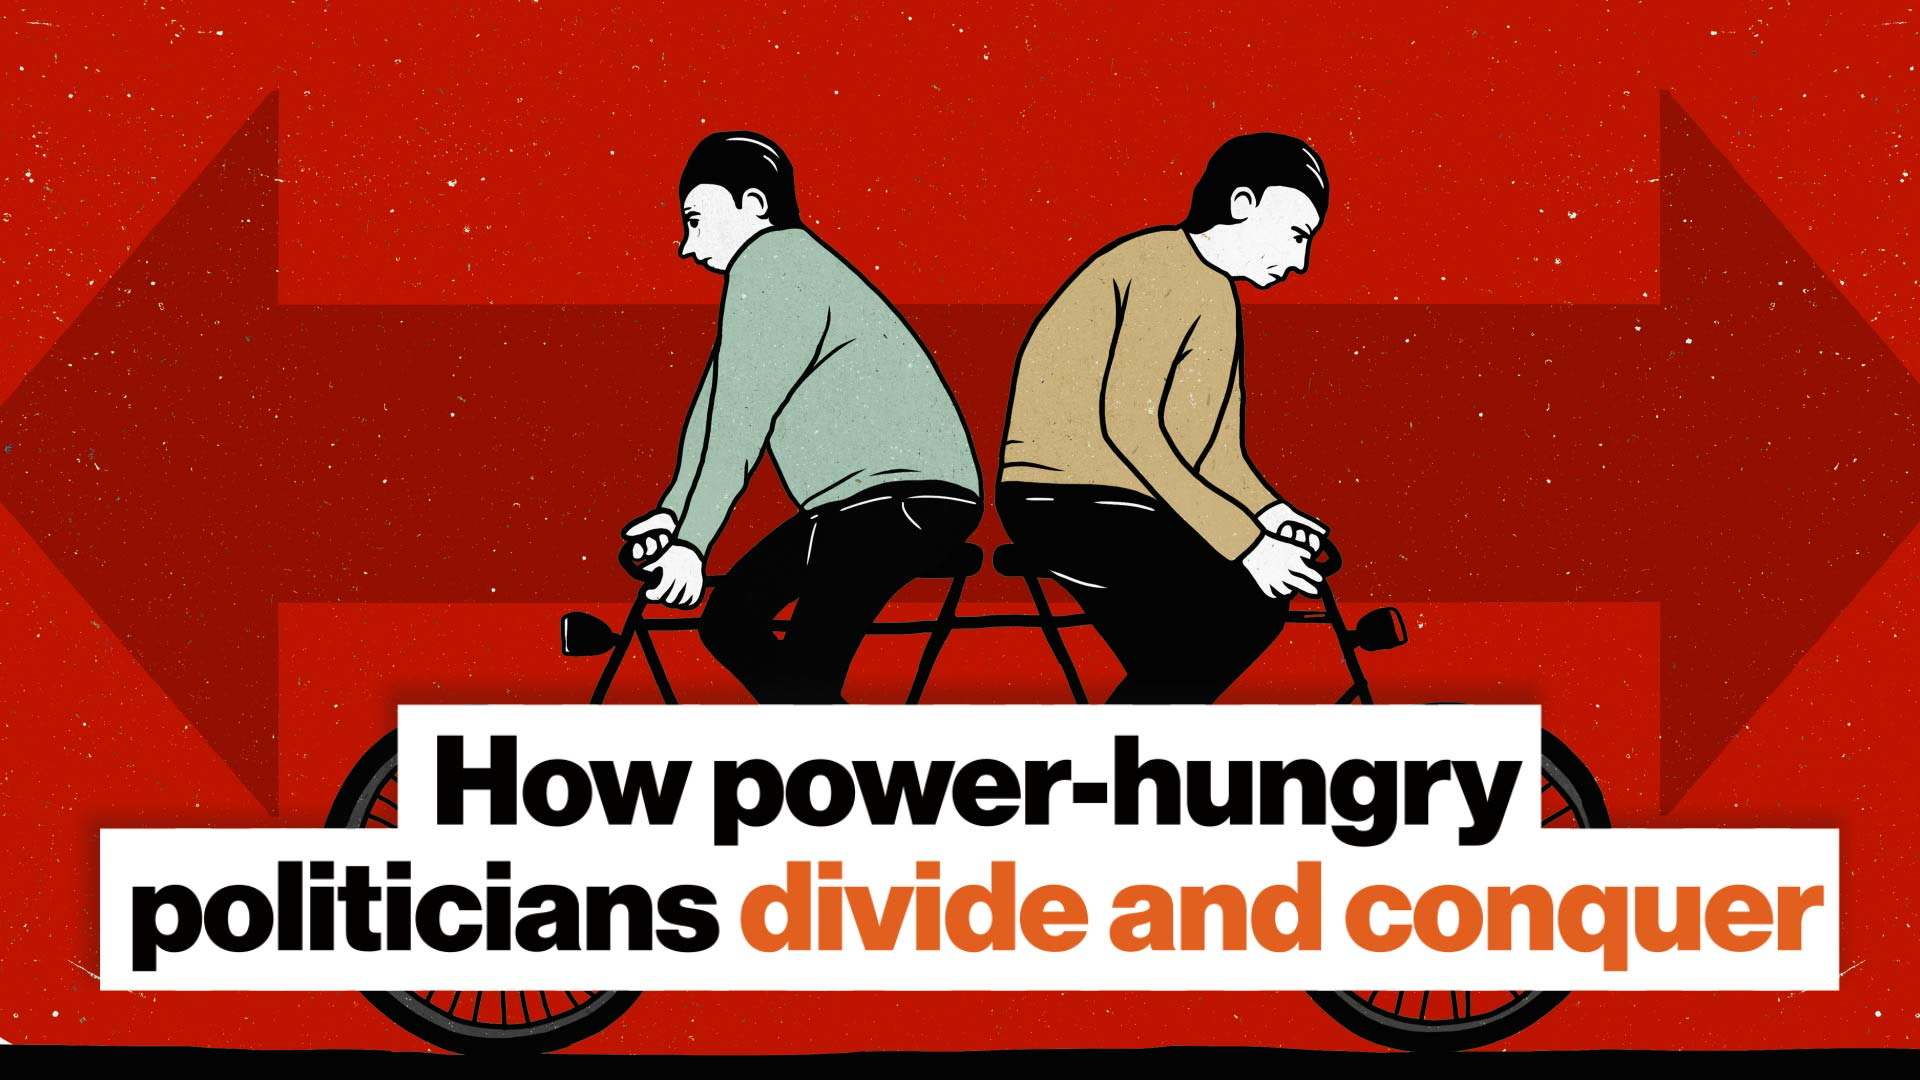 How power-hungry politicians divide and conquer